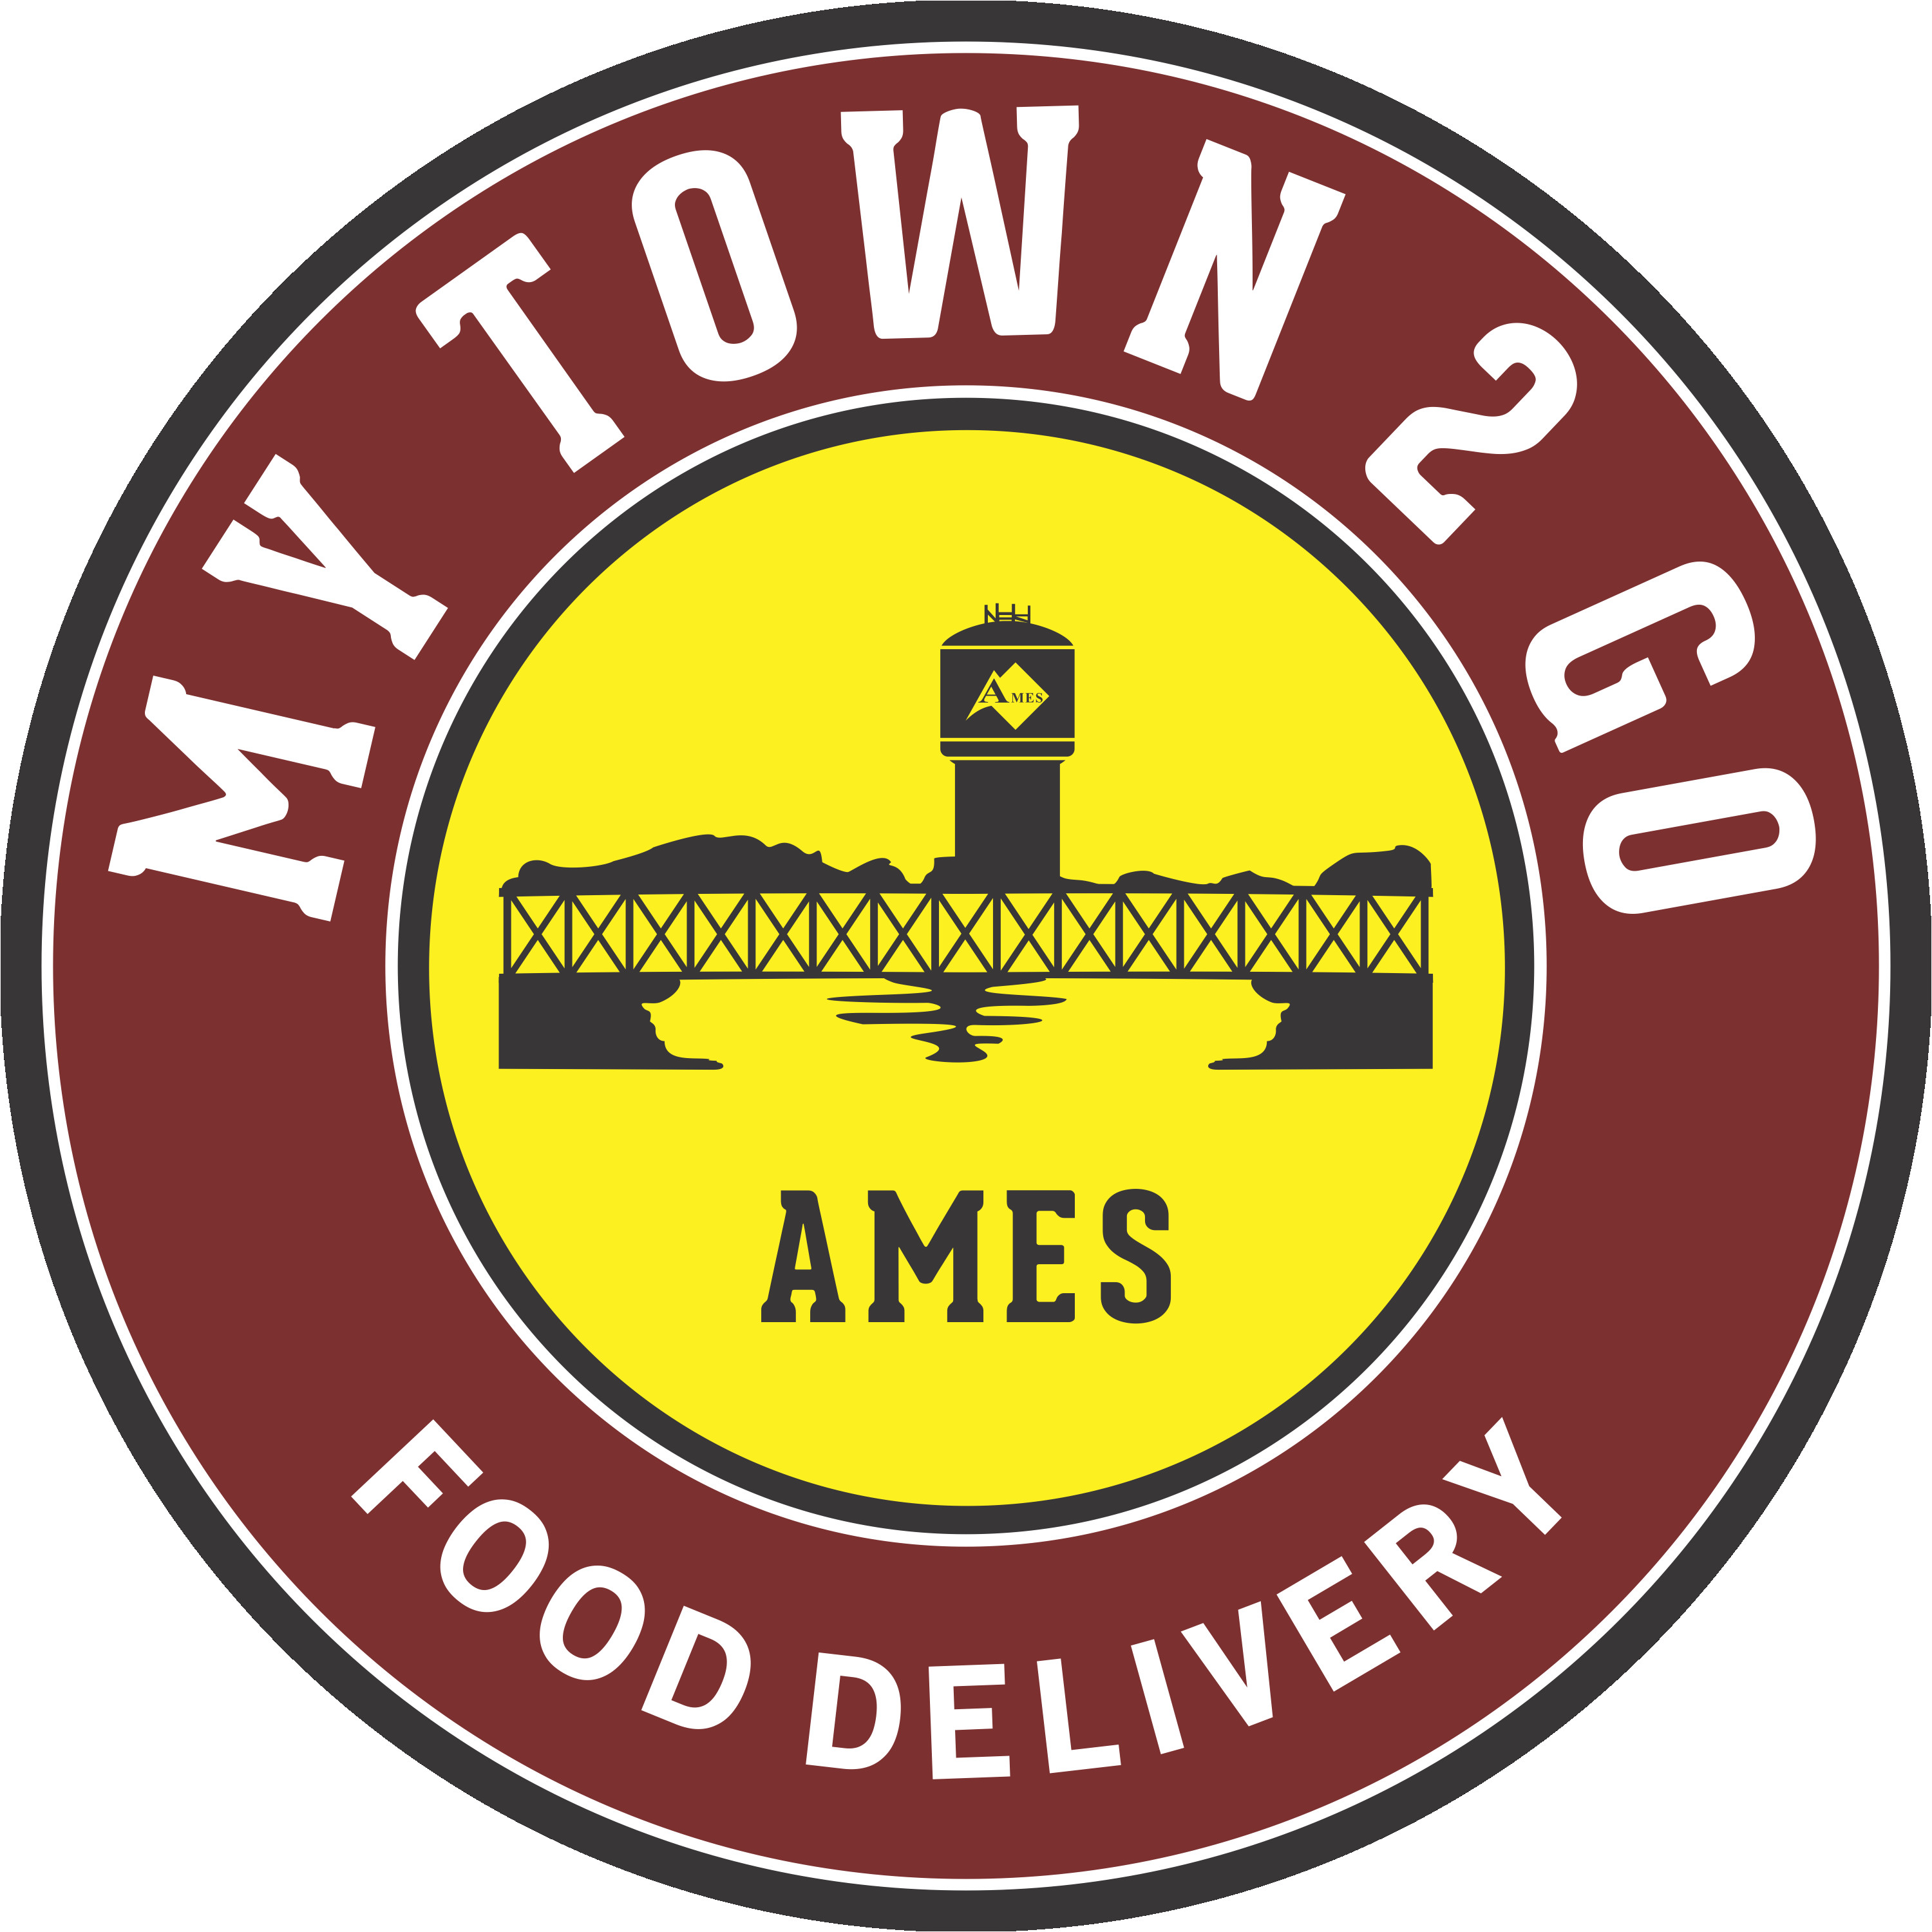 Chinese Food Delivery Savannah Ga Mytown2go Food Delivery Online ordering Takeout Catering